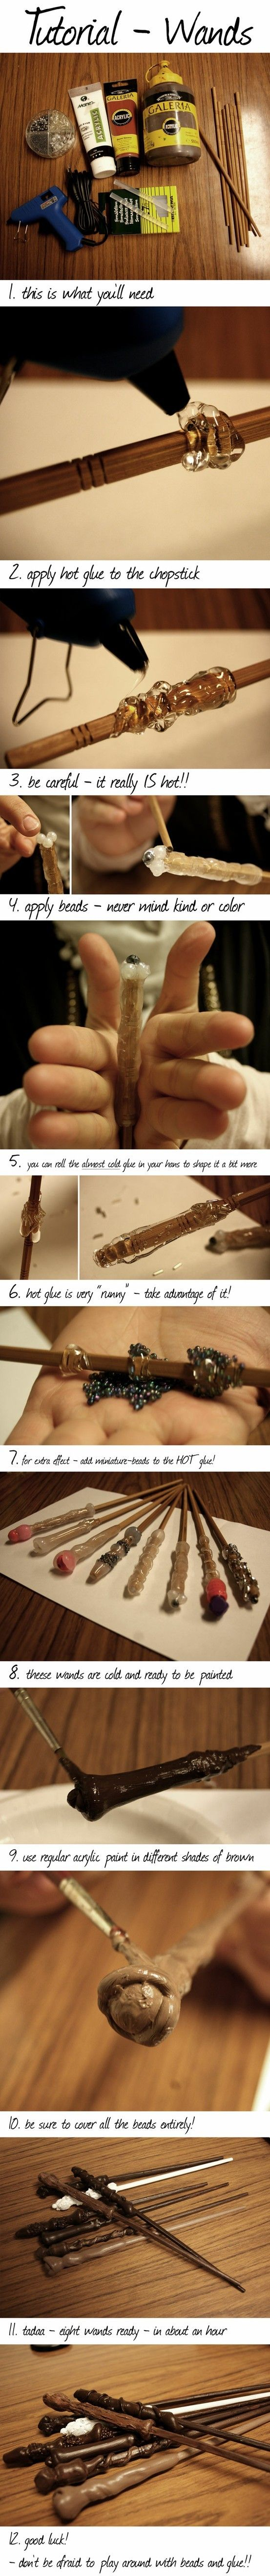 Wands - tutorial by *majann. | wedding props for guests :)